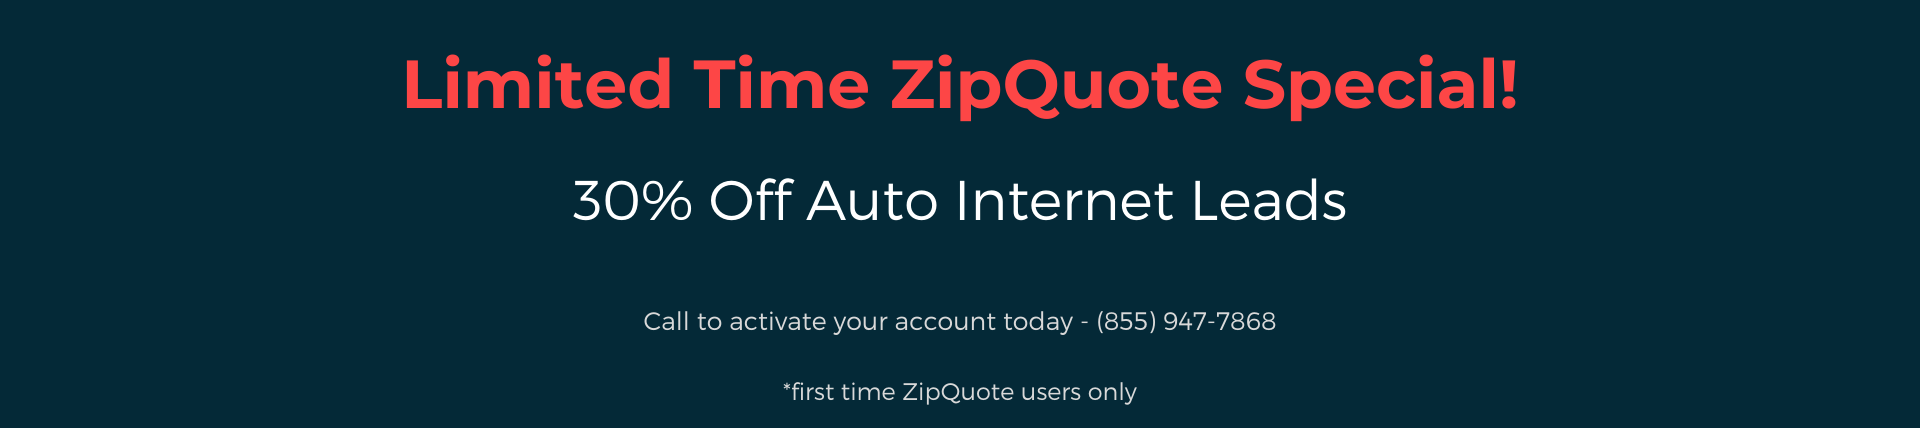 Limited Time ZipQuote Special